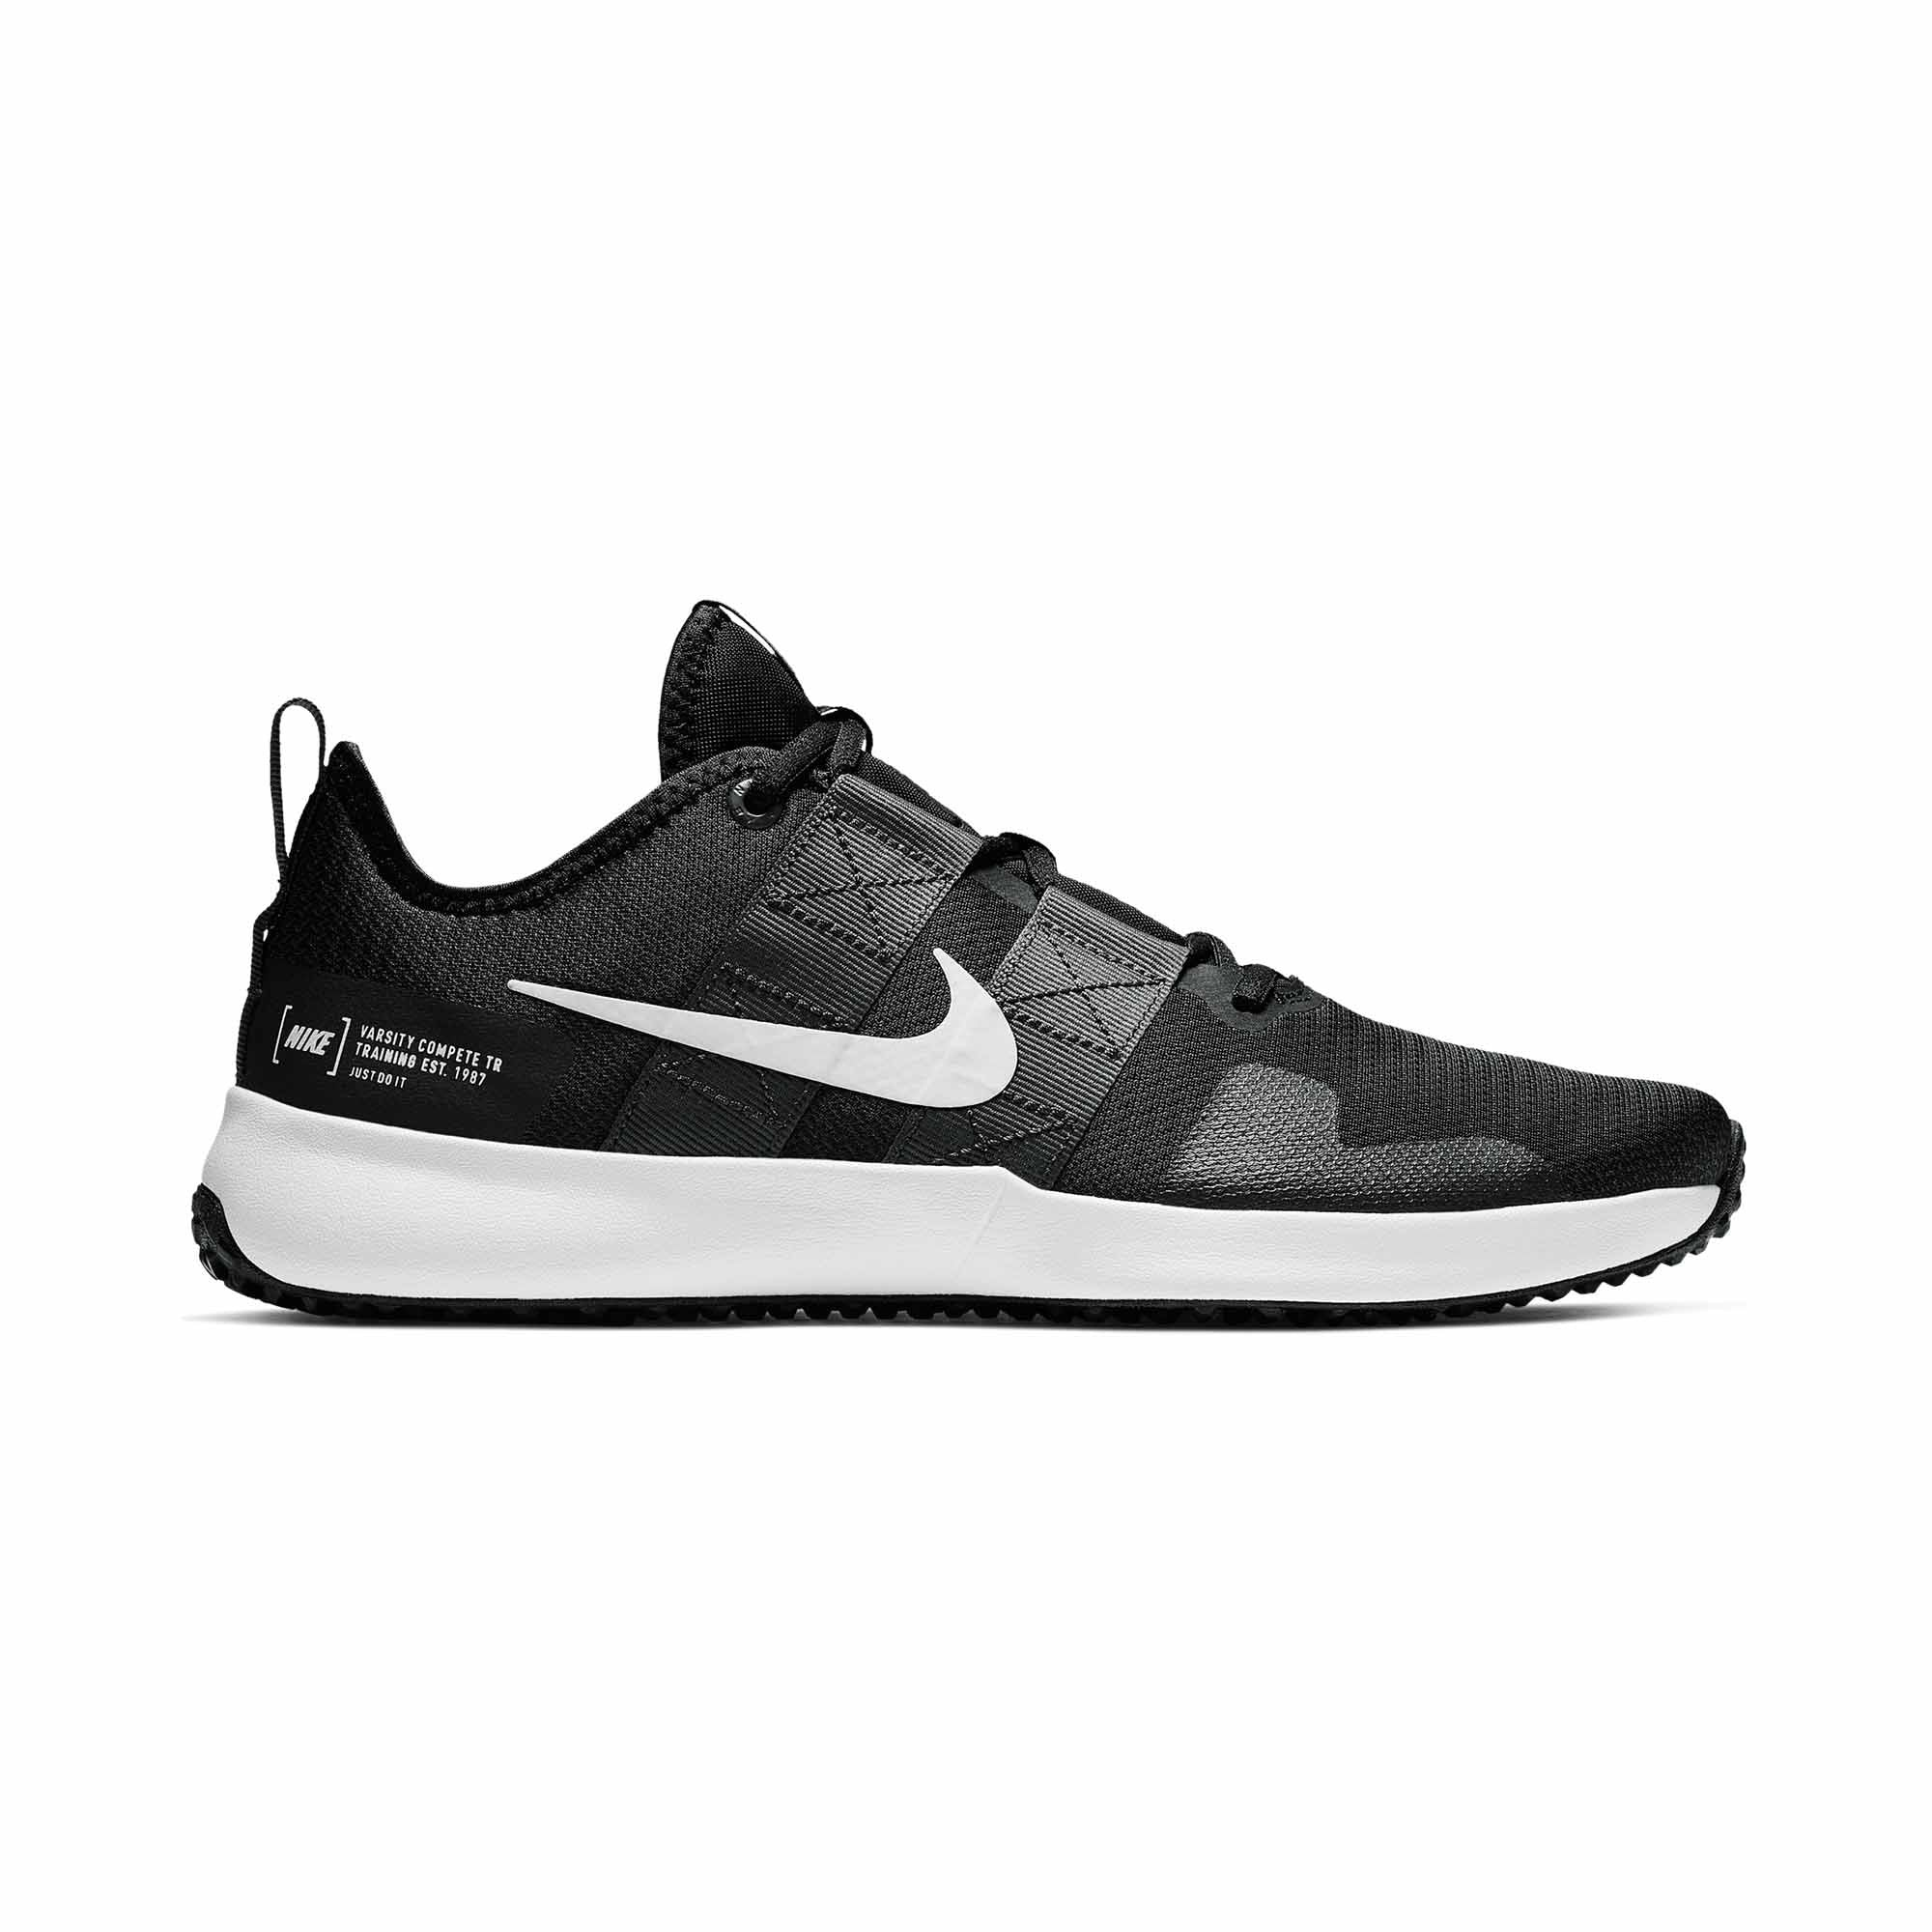 Rápido tobillo Acostado  Buy Nike Men Varsity Compete Tr 2 Training Shoes Online in Singapore |  Royal Sporting House